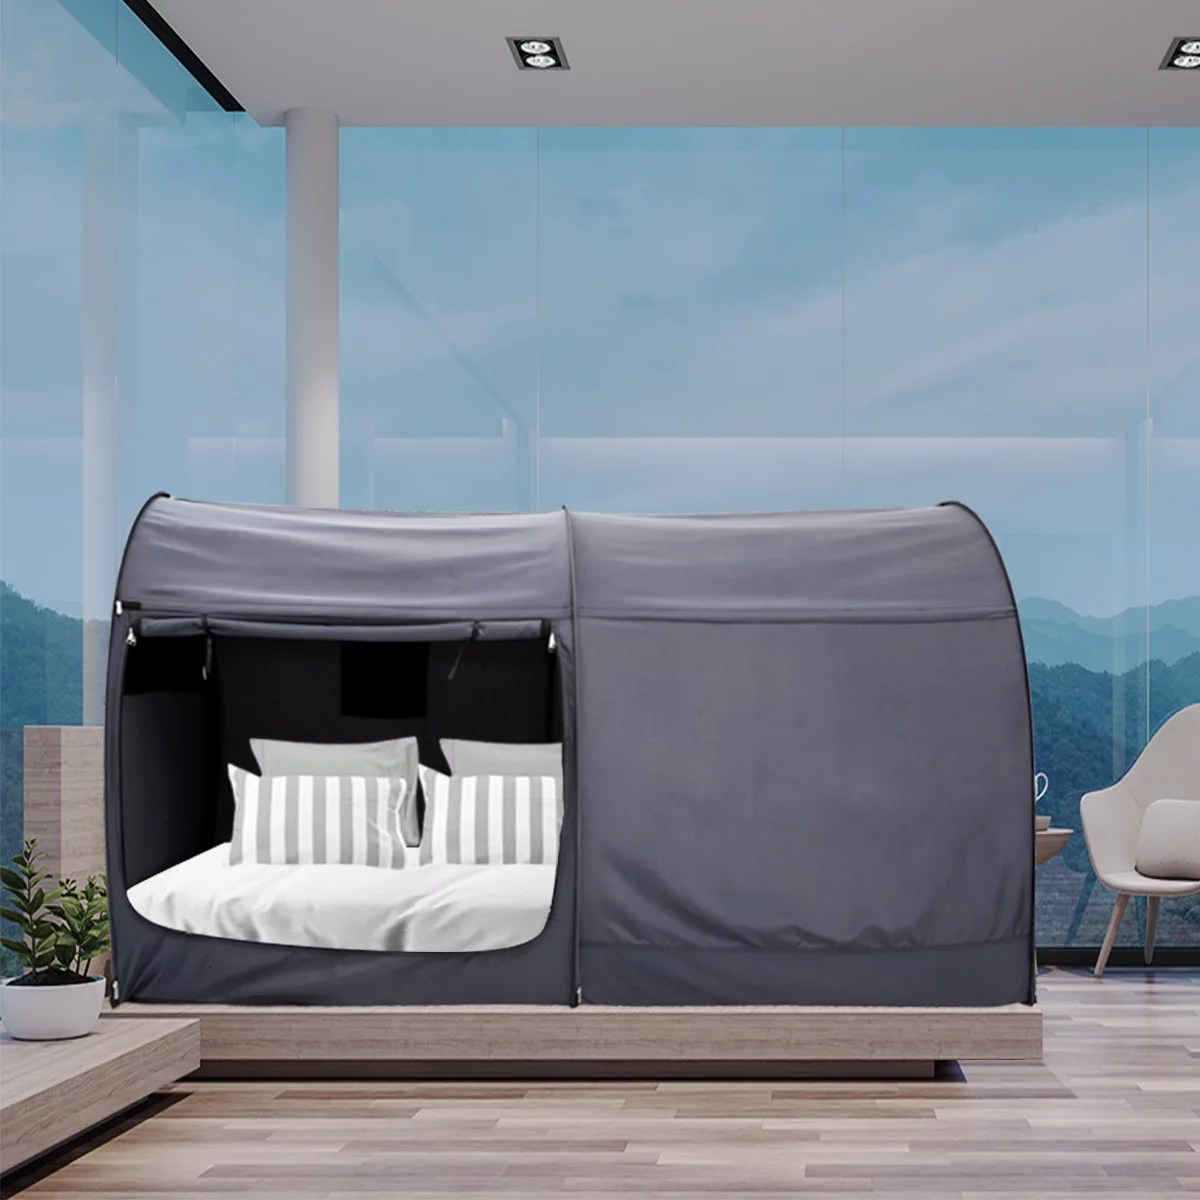 bed canopy tent privacy space bunk twin size indoor curtains gray cottage by alvantor mattress not included walmart com